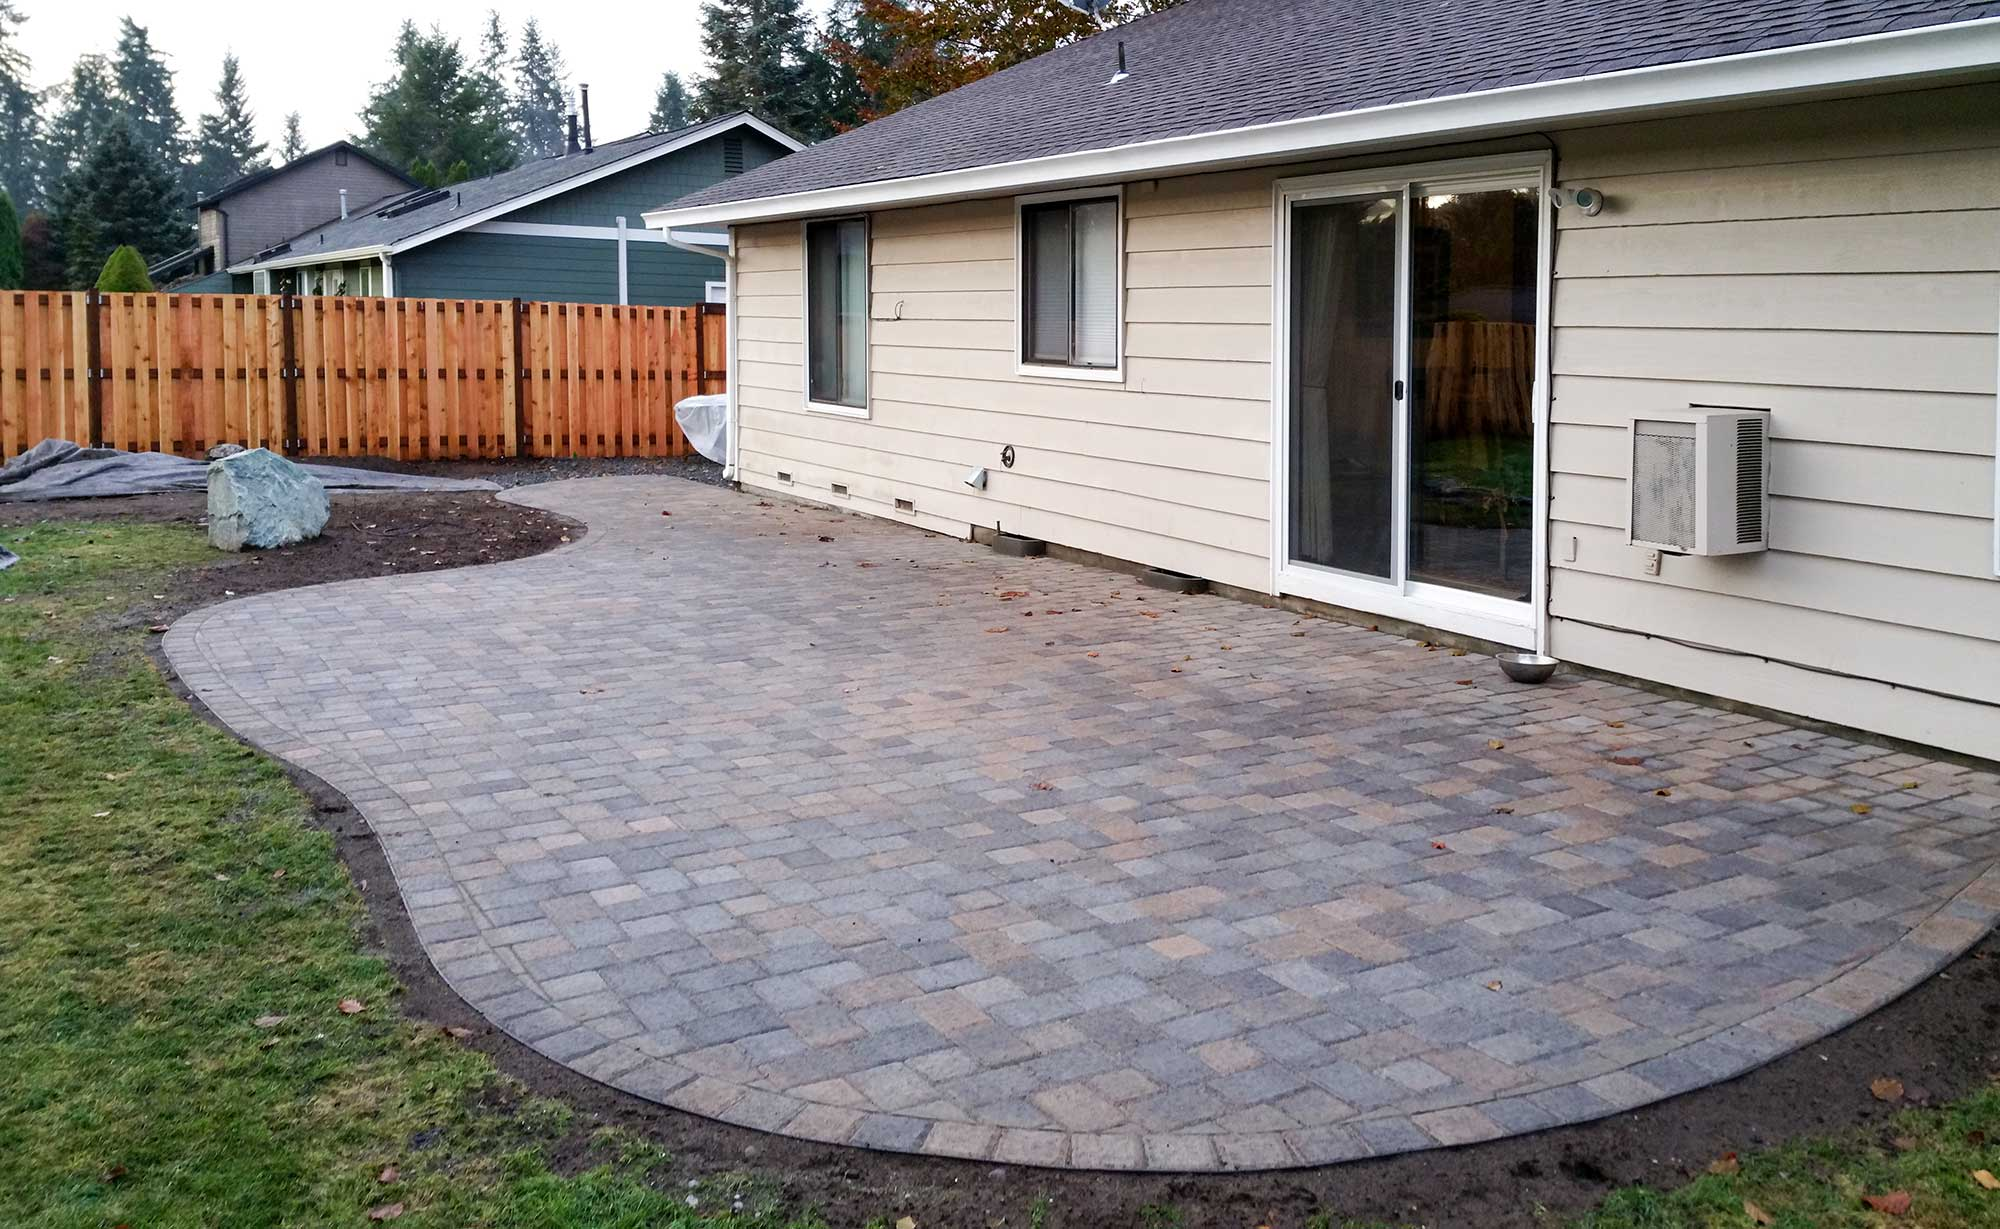 Paver Patio & Fence in South Olympia AJB Landscaping & Fence